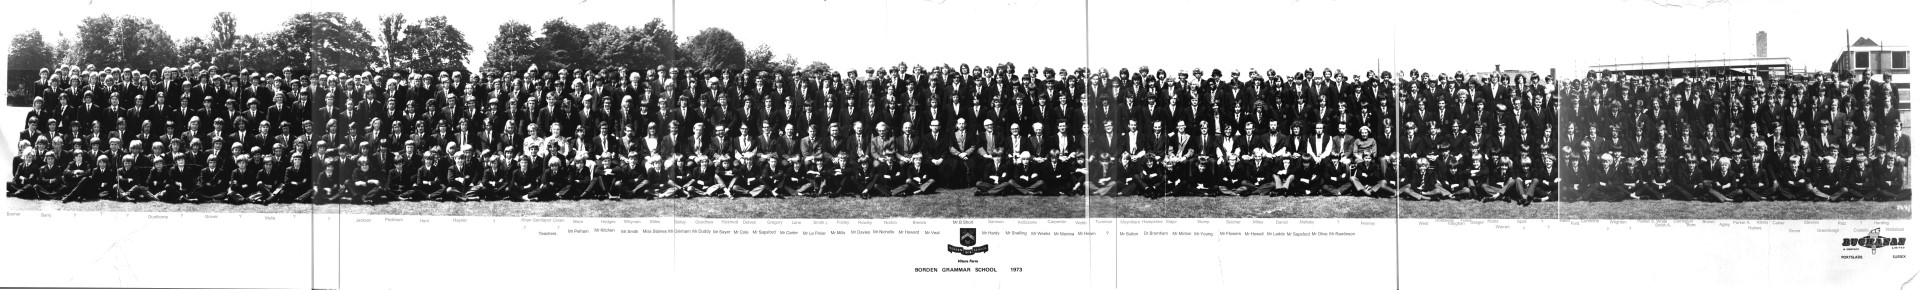 BGS School Photo 1973 Large